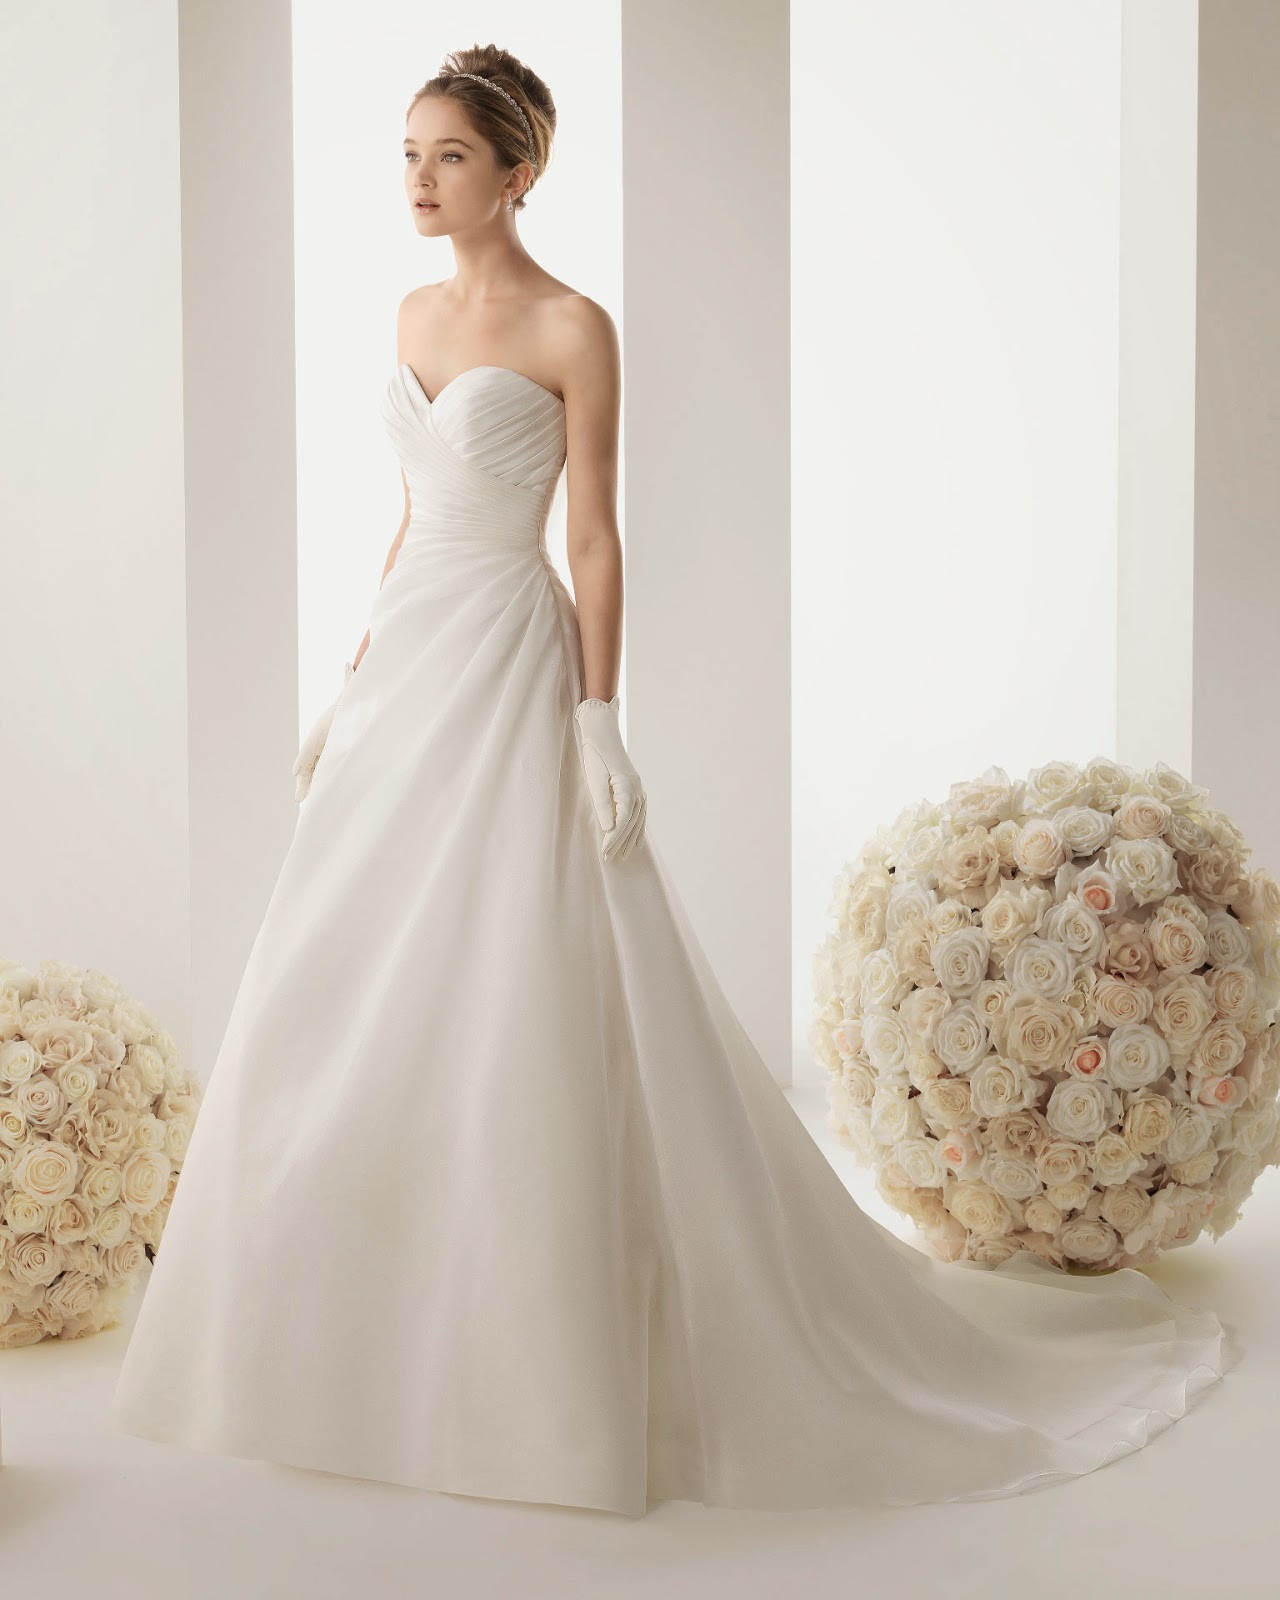 Neoromantic Bridal Sdn. Bhd----Tailor made wedding gown: Wedding ...